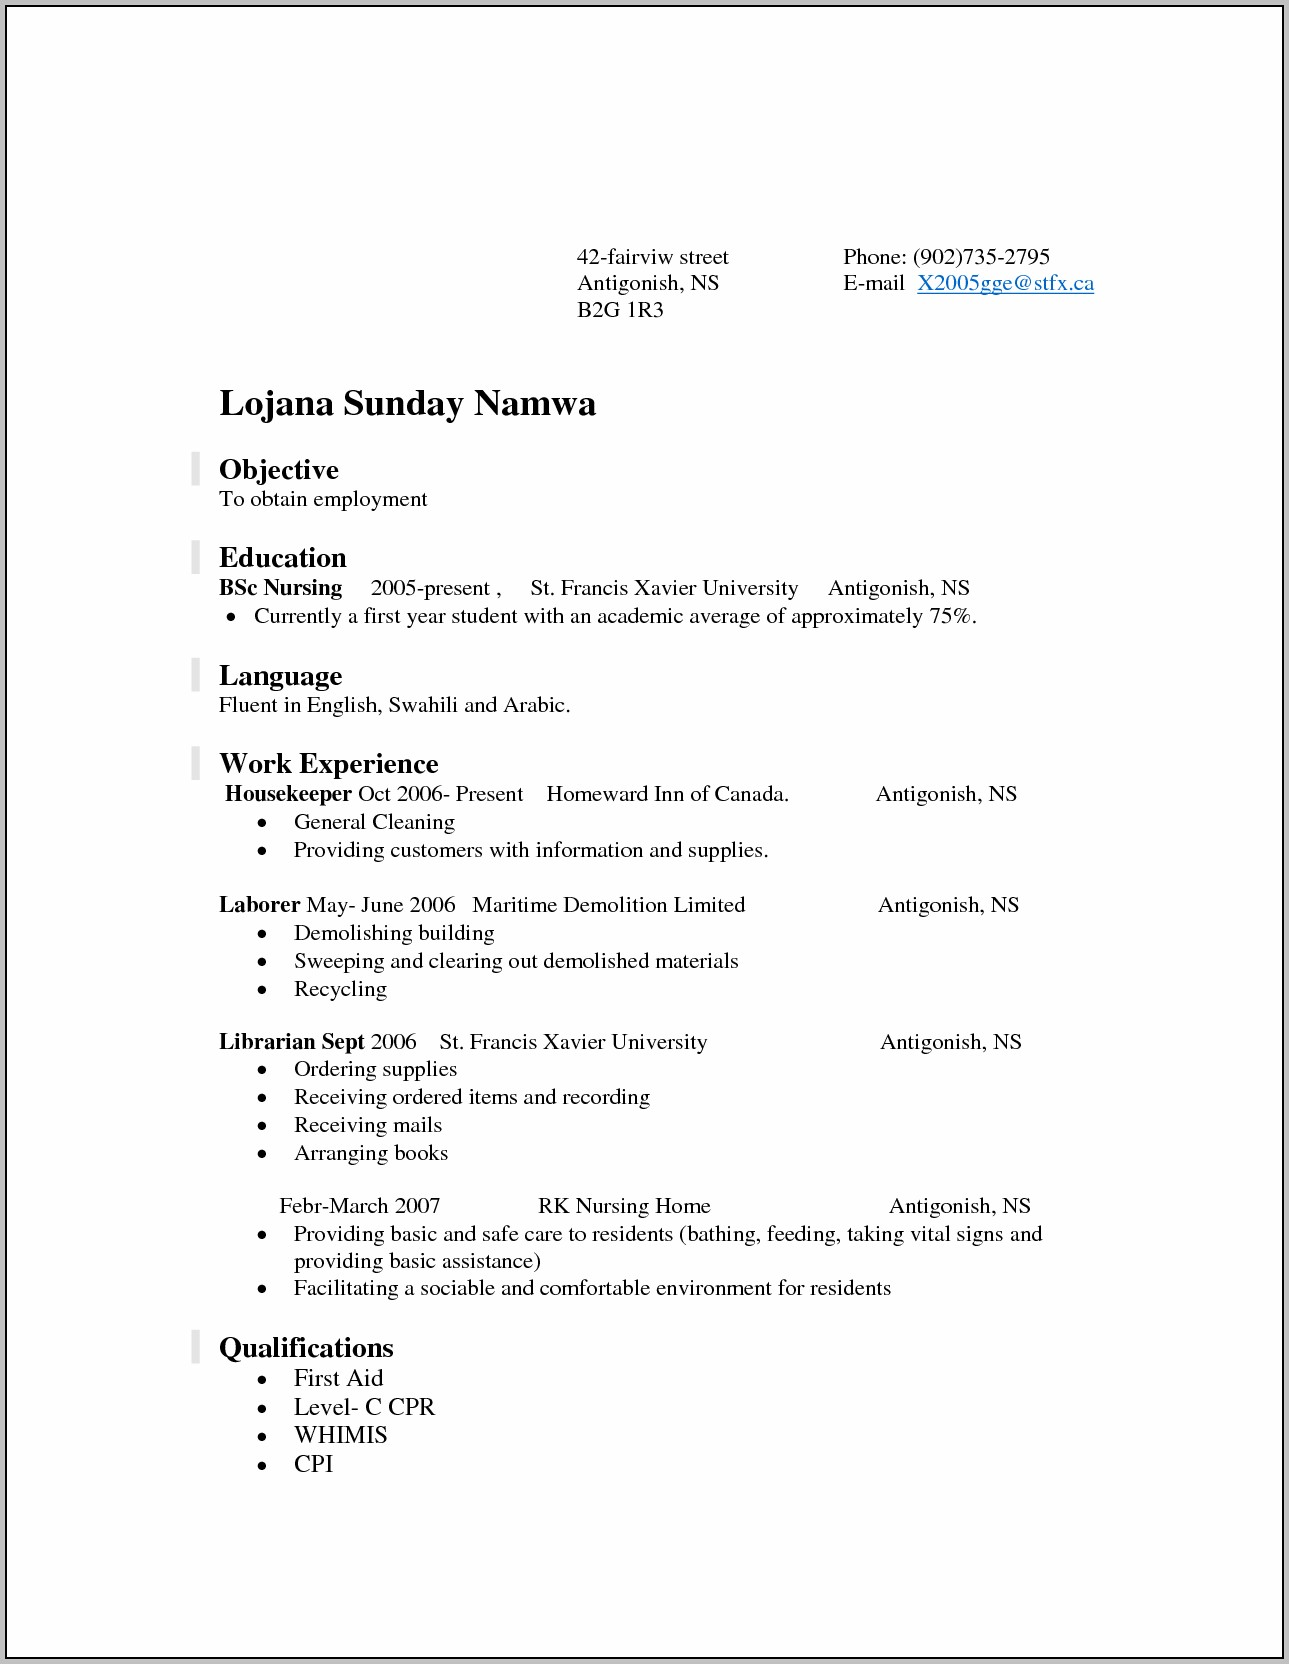 Resume For Rn With 10 Years Experience